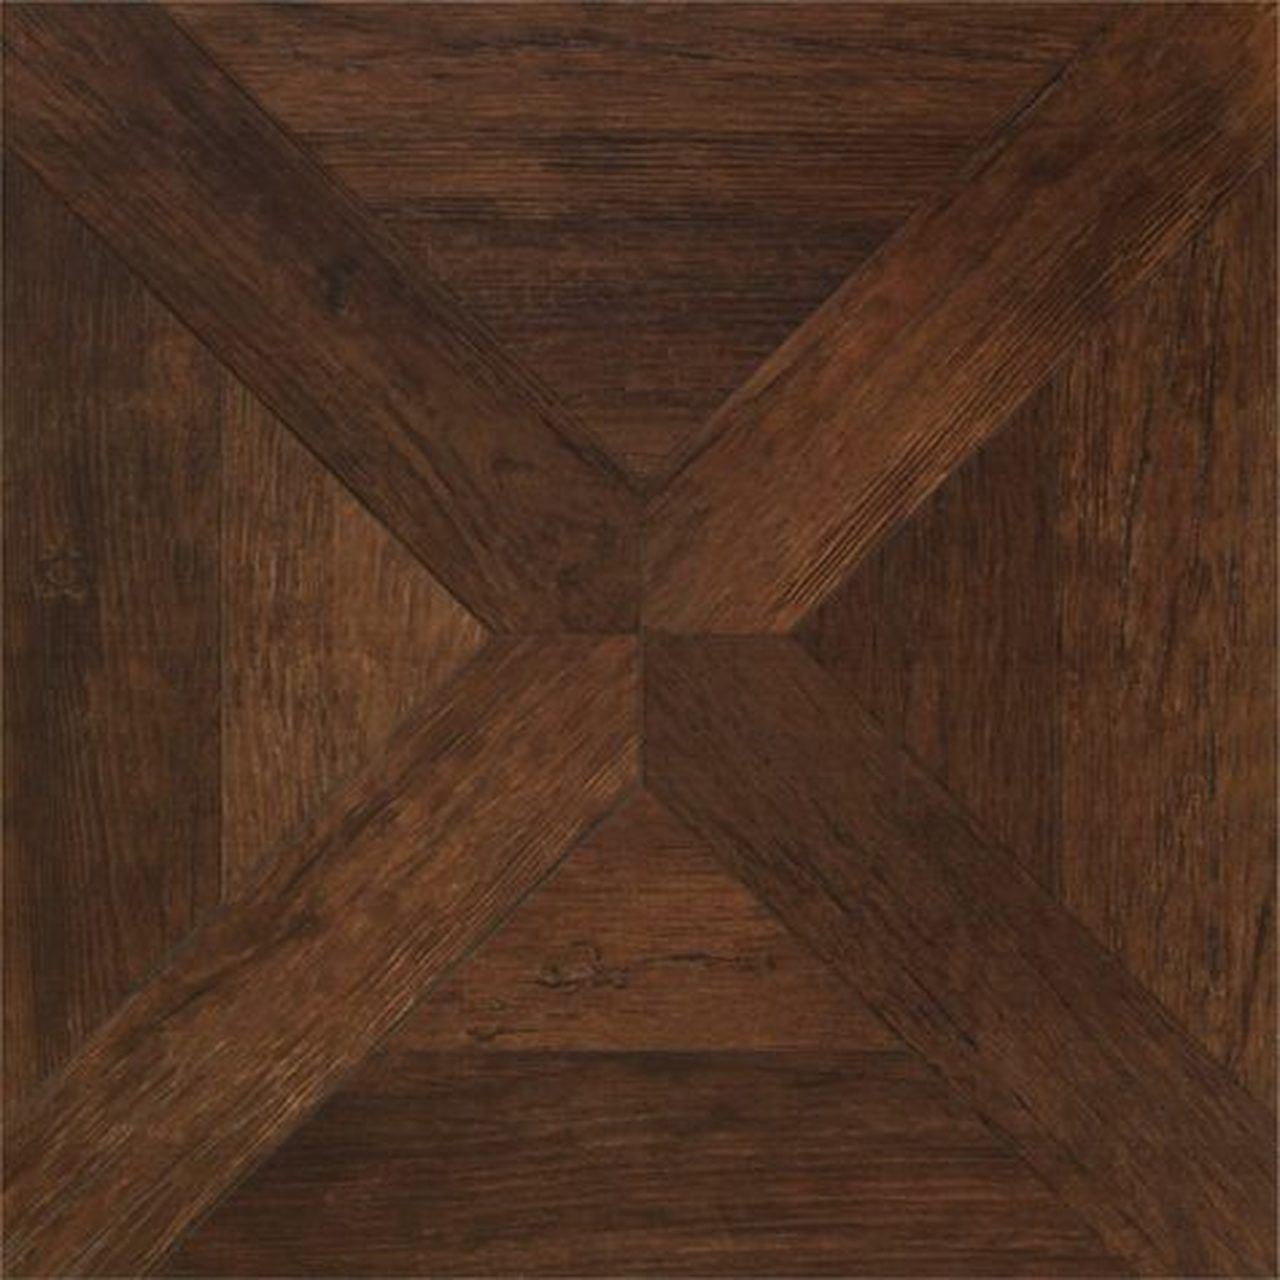 Vintage Wood Rovere 19 X 19 Wood Look Porcelain By Settecento 5 98 Per Square Foot In 2020 Wood Look Tile Floor Wood Look Tile Vintage Tile